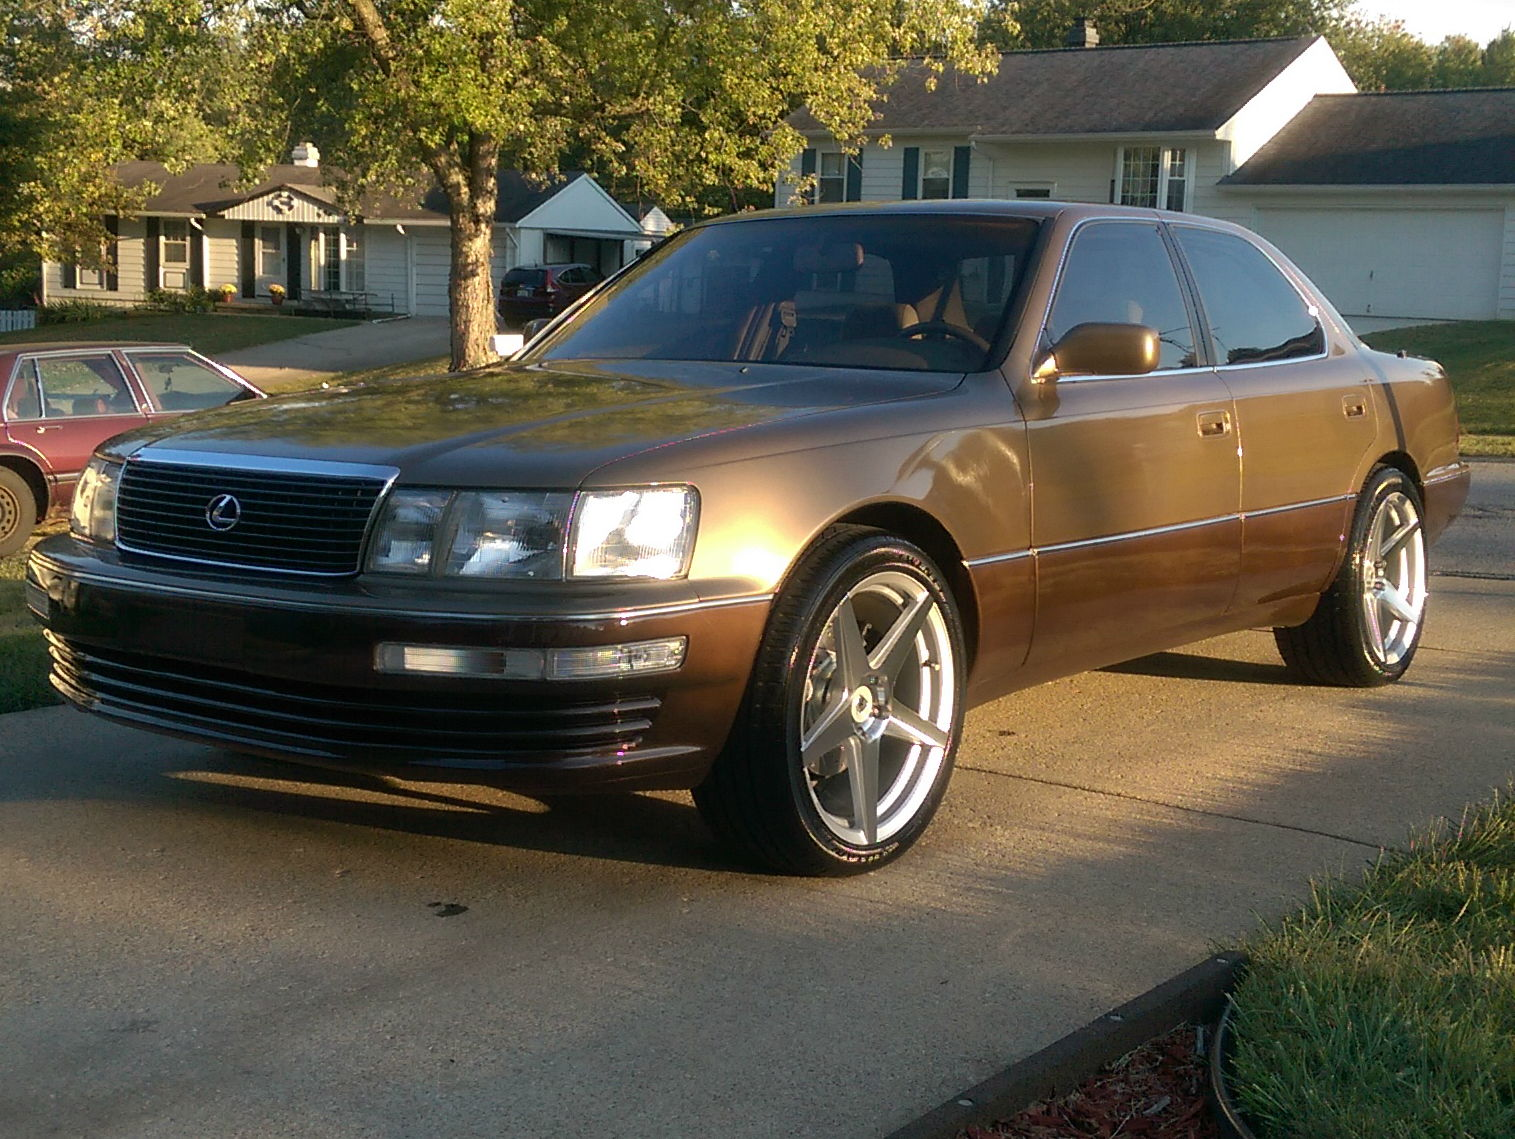 need 1994 us ls400 wiring diagram club lexus forums input and help links would be greatly appreciated